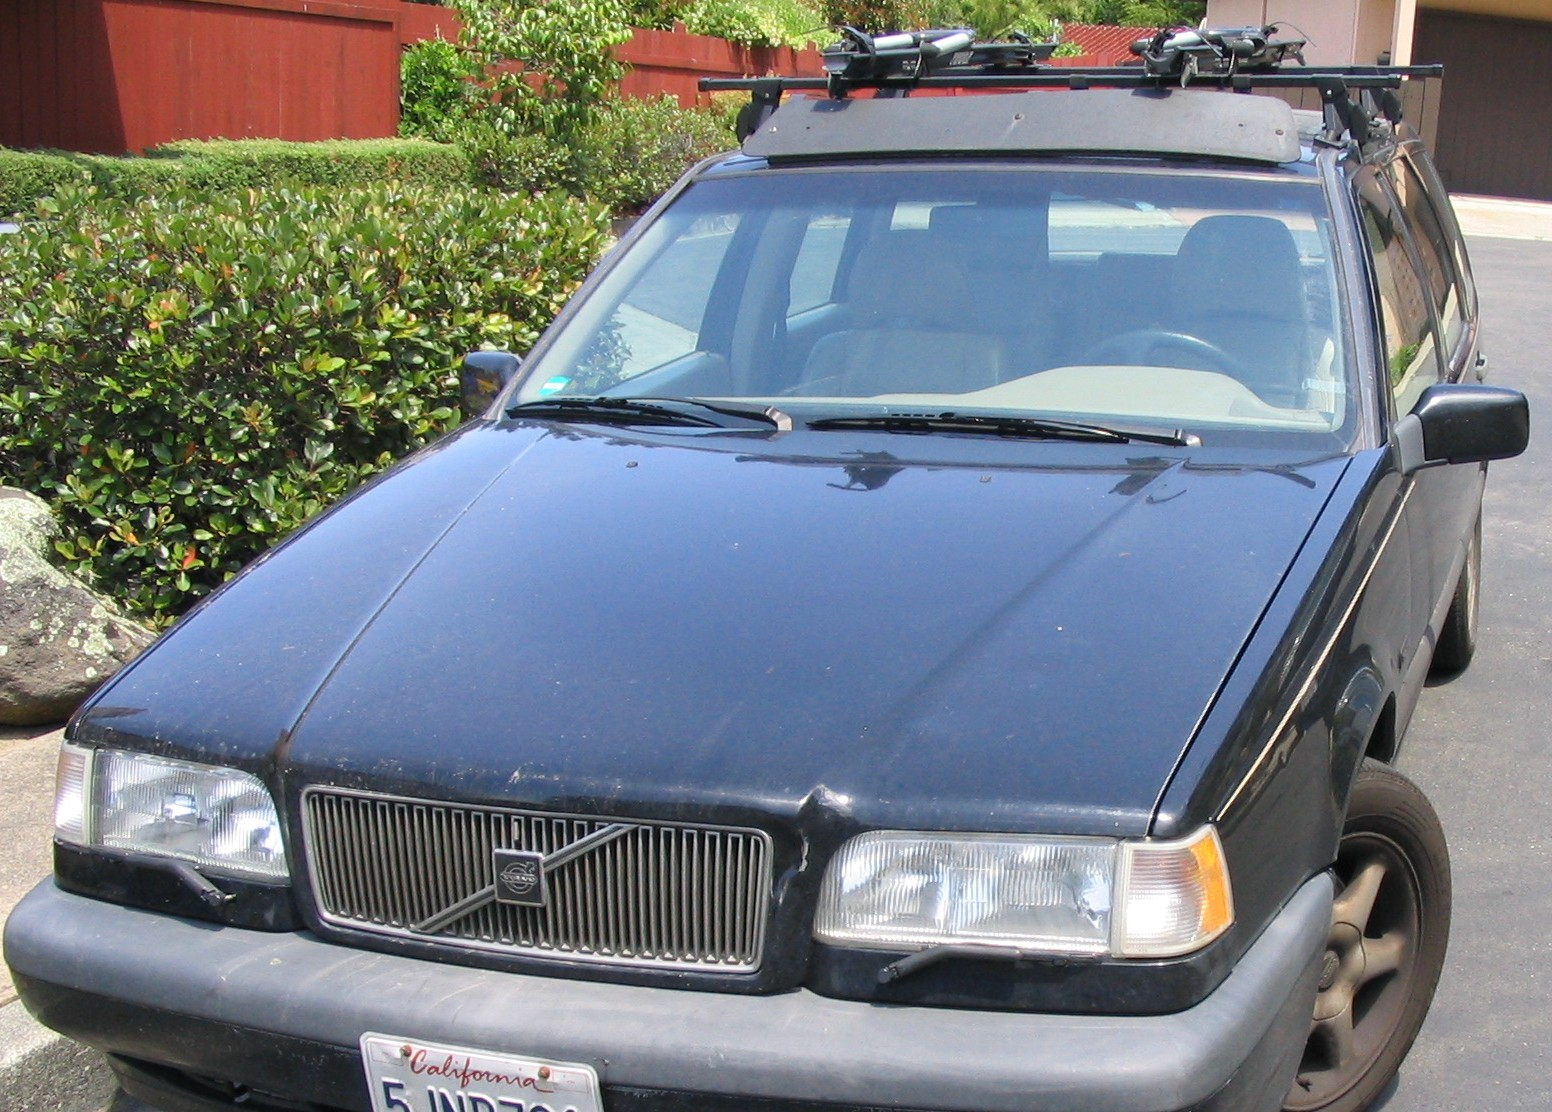 Picture of Fix a Loose Headlight Reflector on a Volvo 850